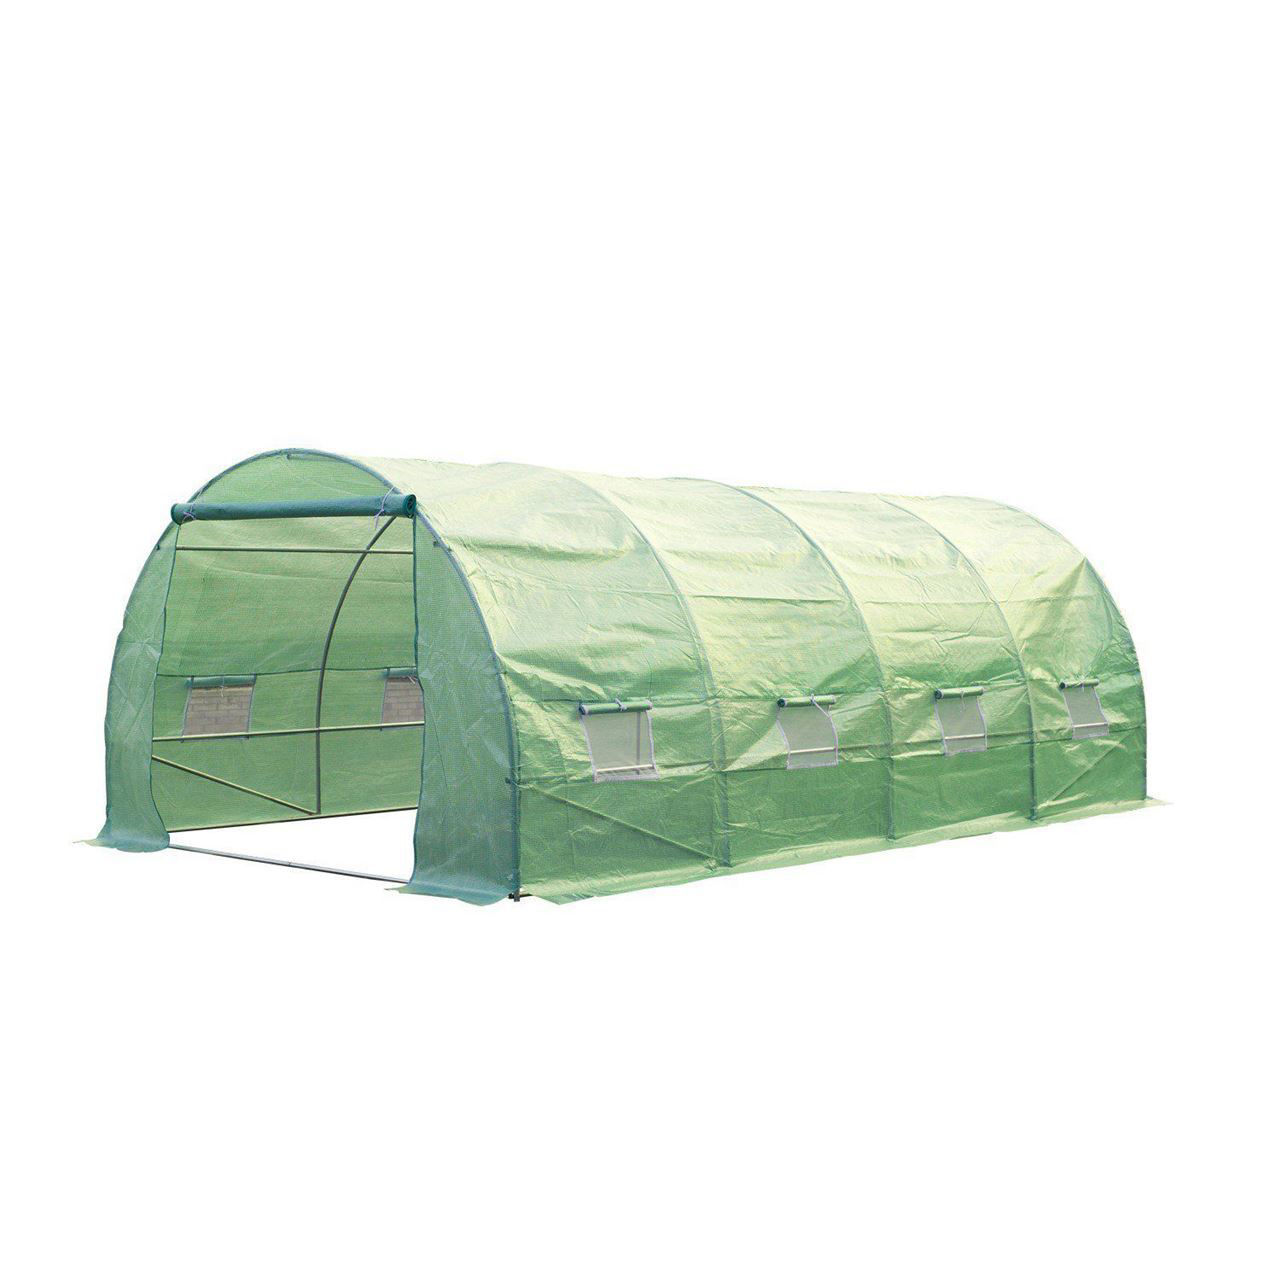 Picture of Outdoor Portable Greenhouse 20' x 10' x 7'